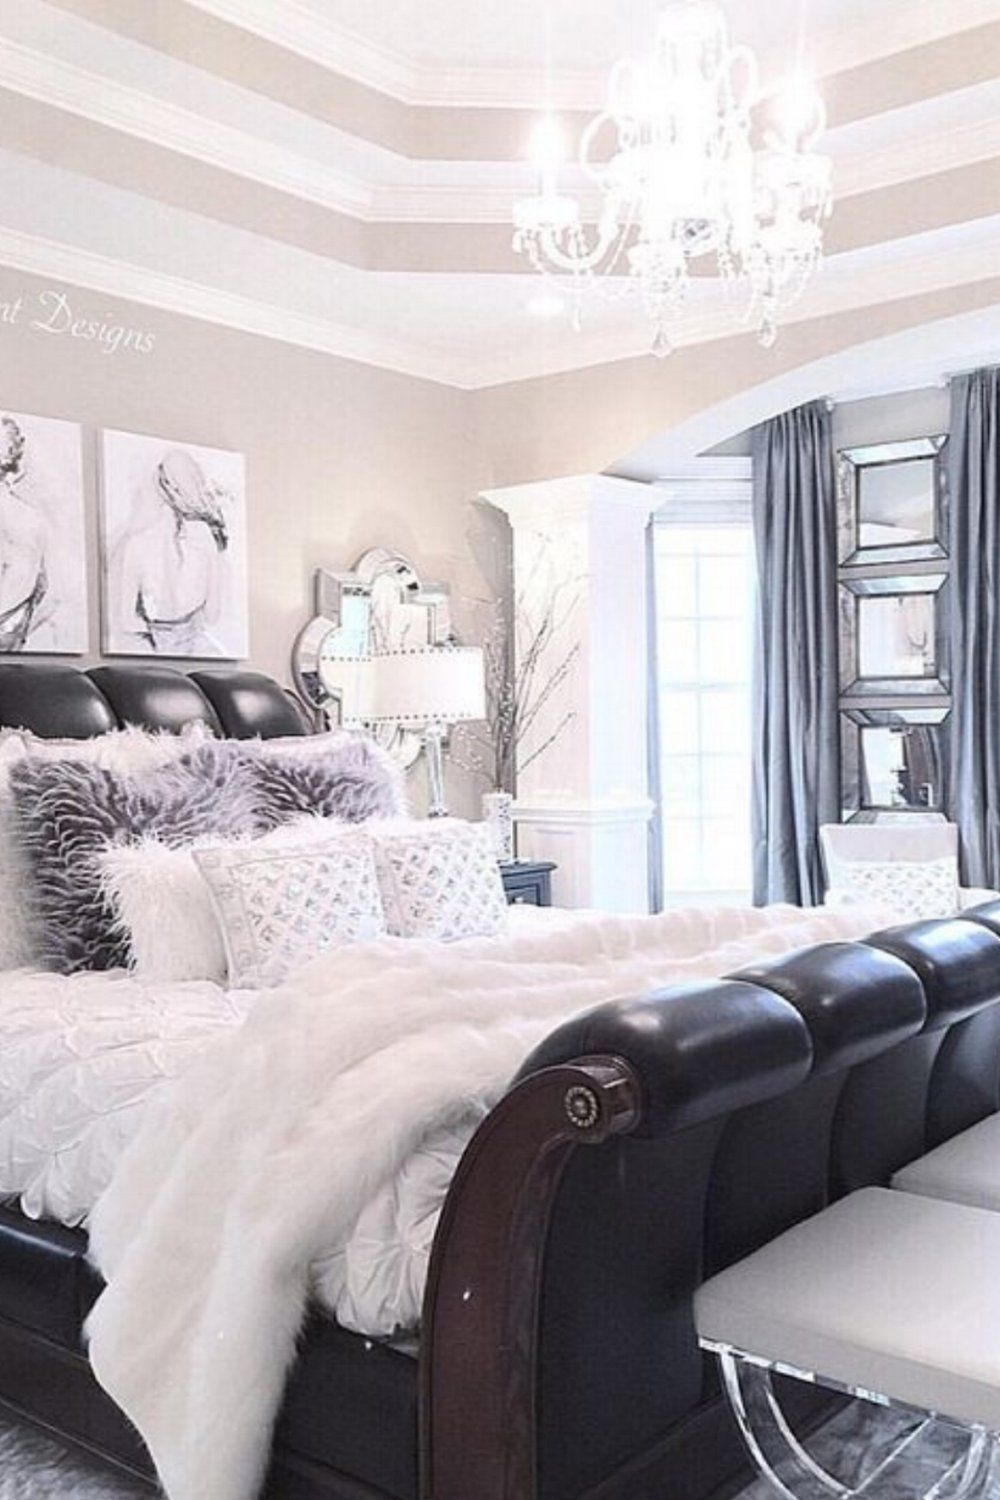 31 gorgeous ultra modern bedroom designs master on dreamy luxurious master bedroom designs and decor ideas id=70206